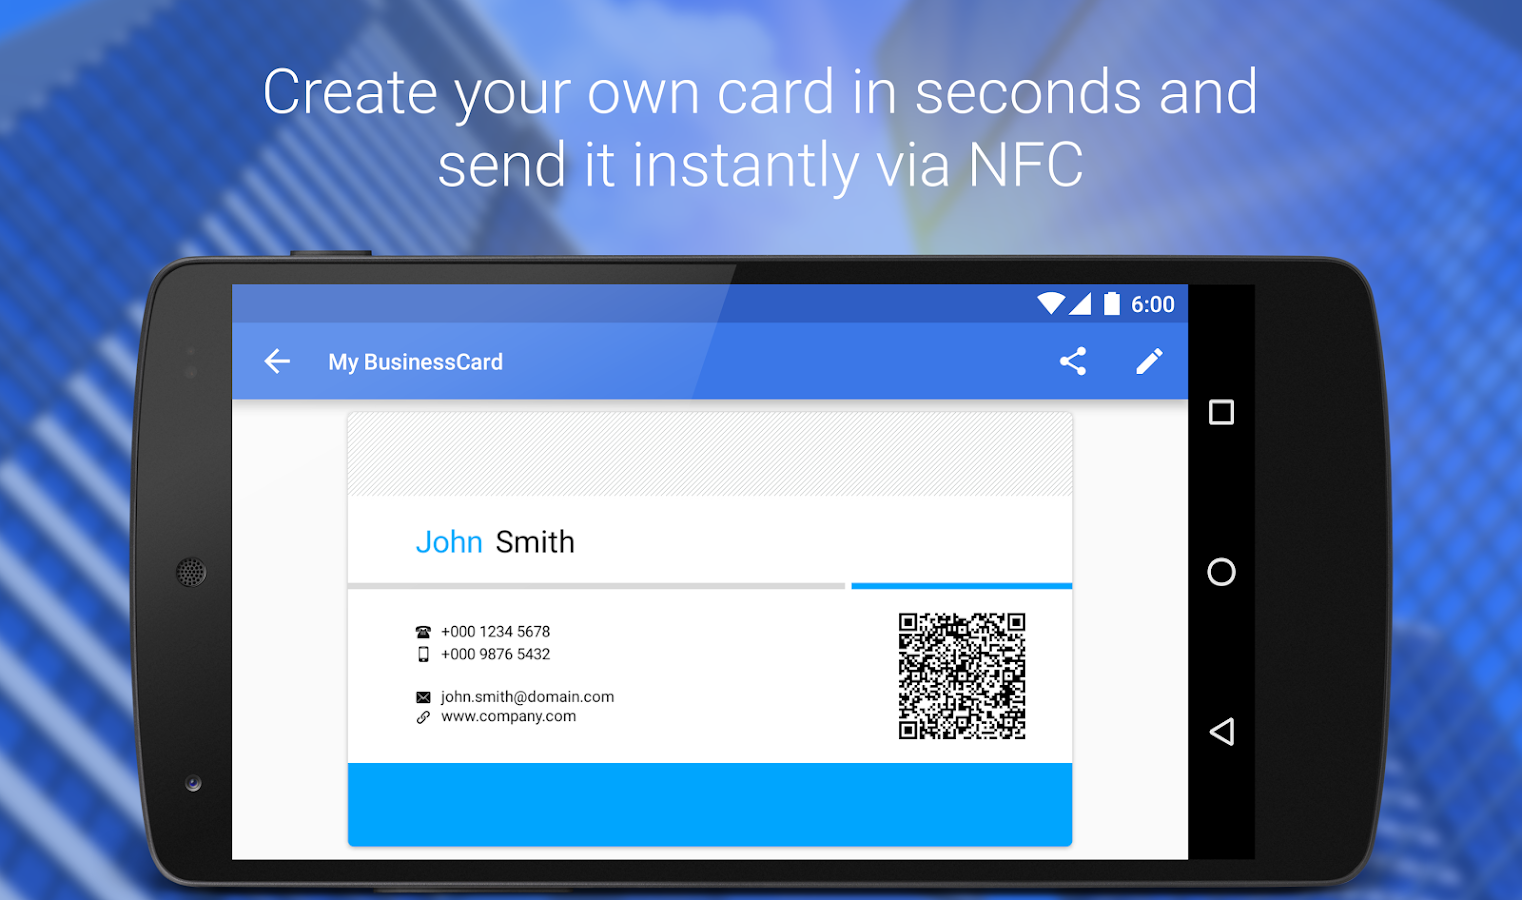 Business Card Reader Android Apps on Google Play